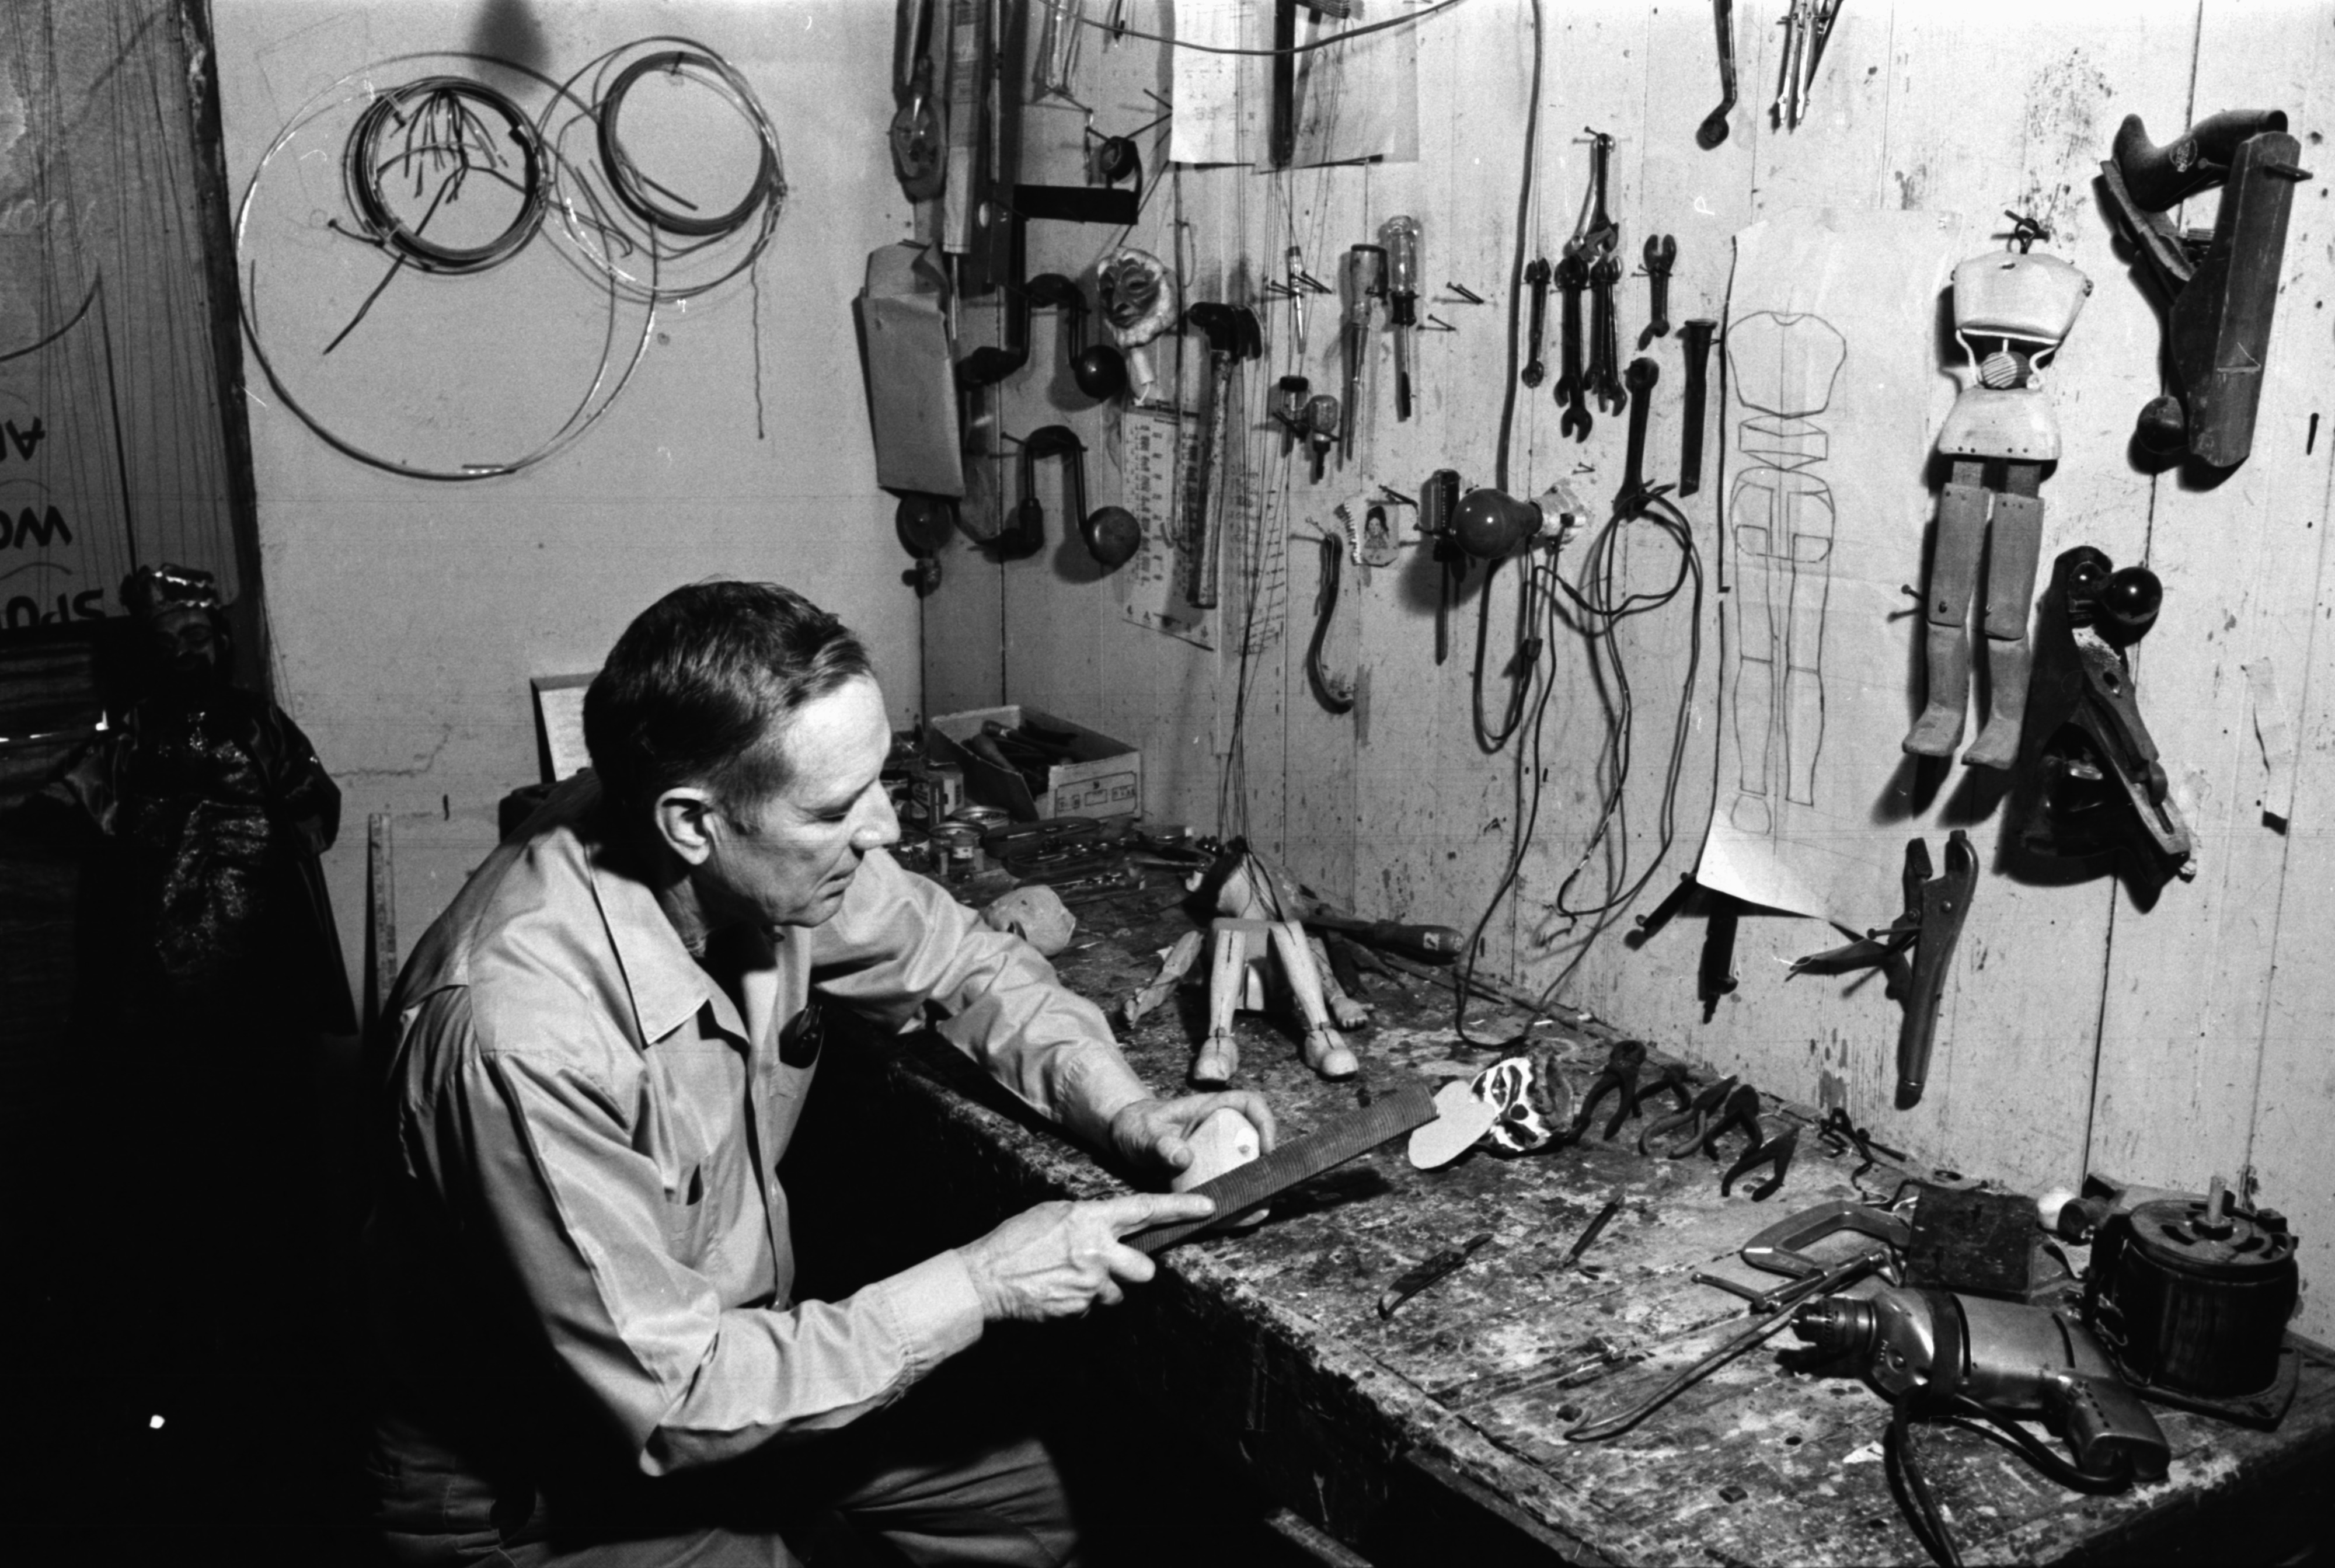 Meredith Bixby in his workshop, February 1969 image